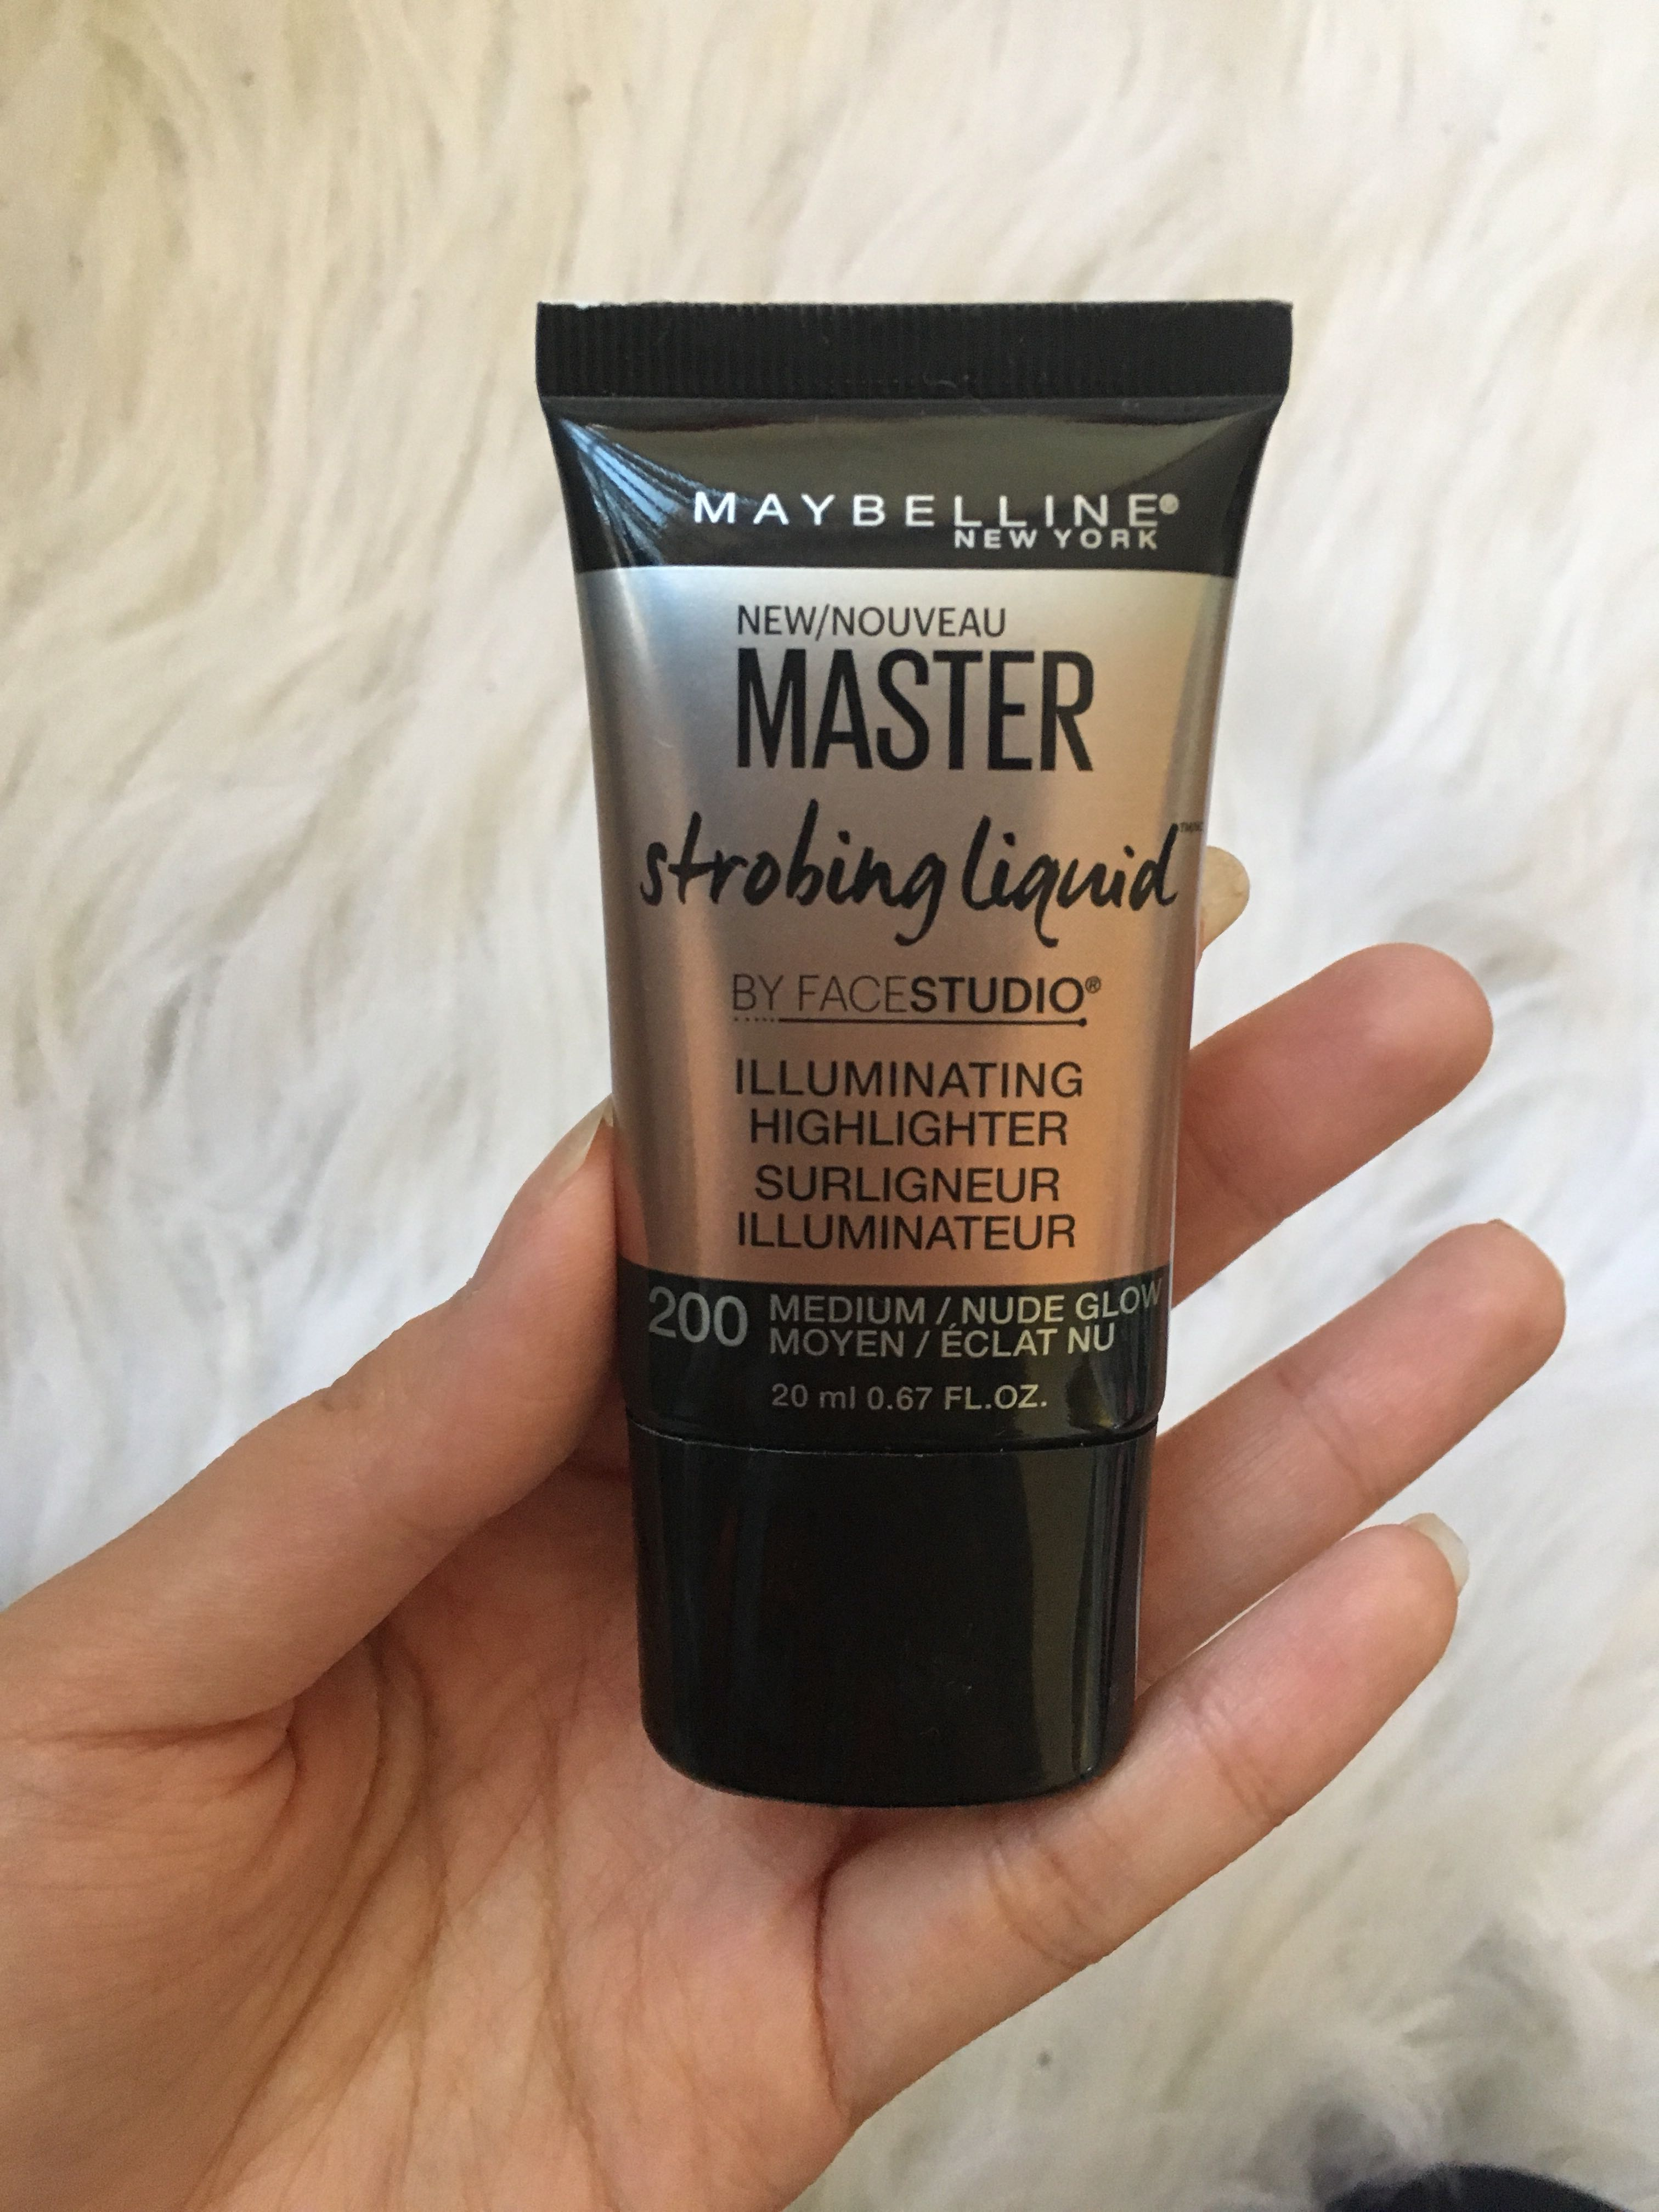 Maybelline Strobing Liquid Highlighter